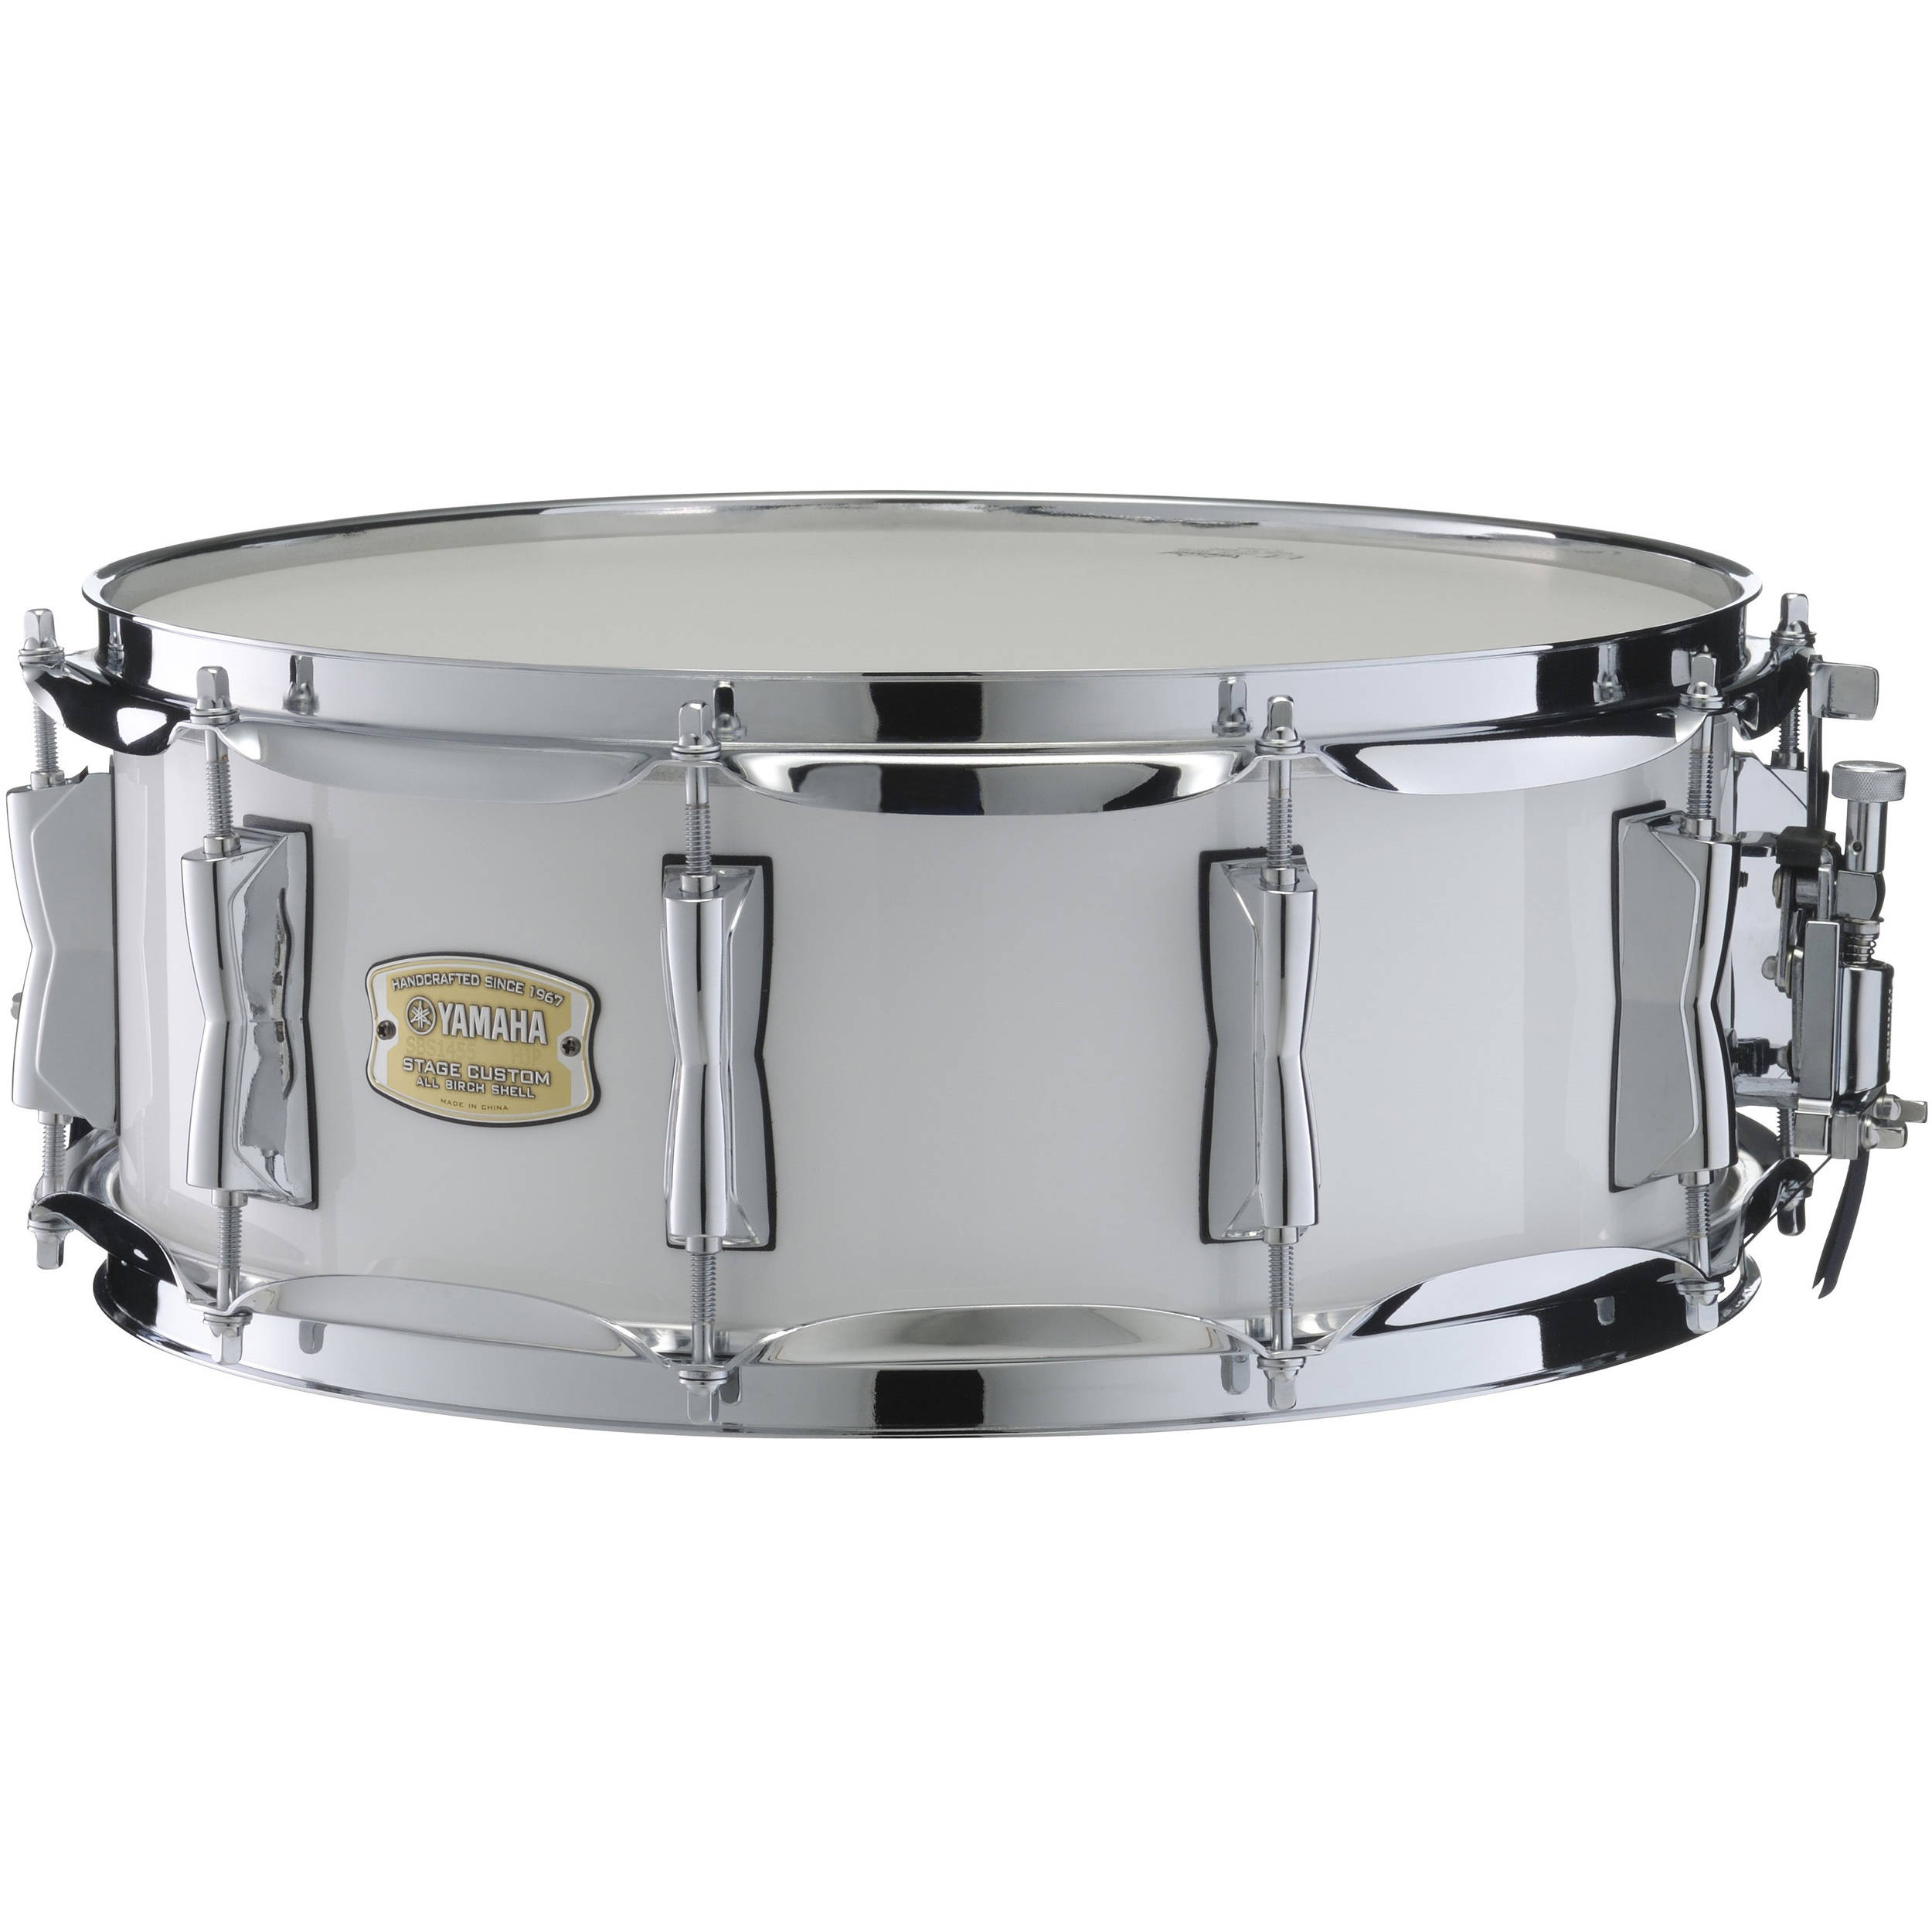 yamaha sbs1455pw stage custom birch snare pure white. Black Bedroom Furniture Sets. Home Design Ideas